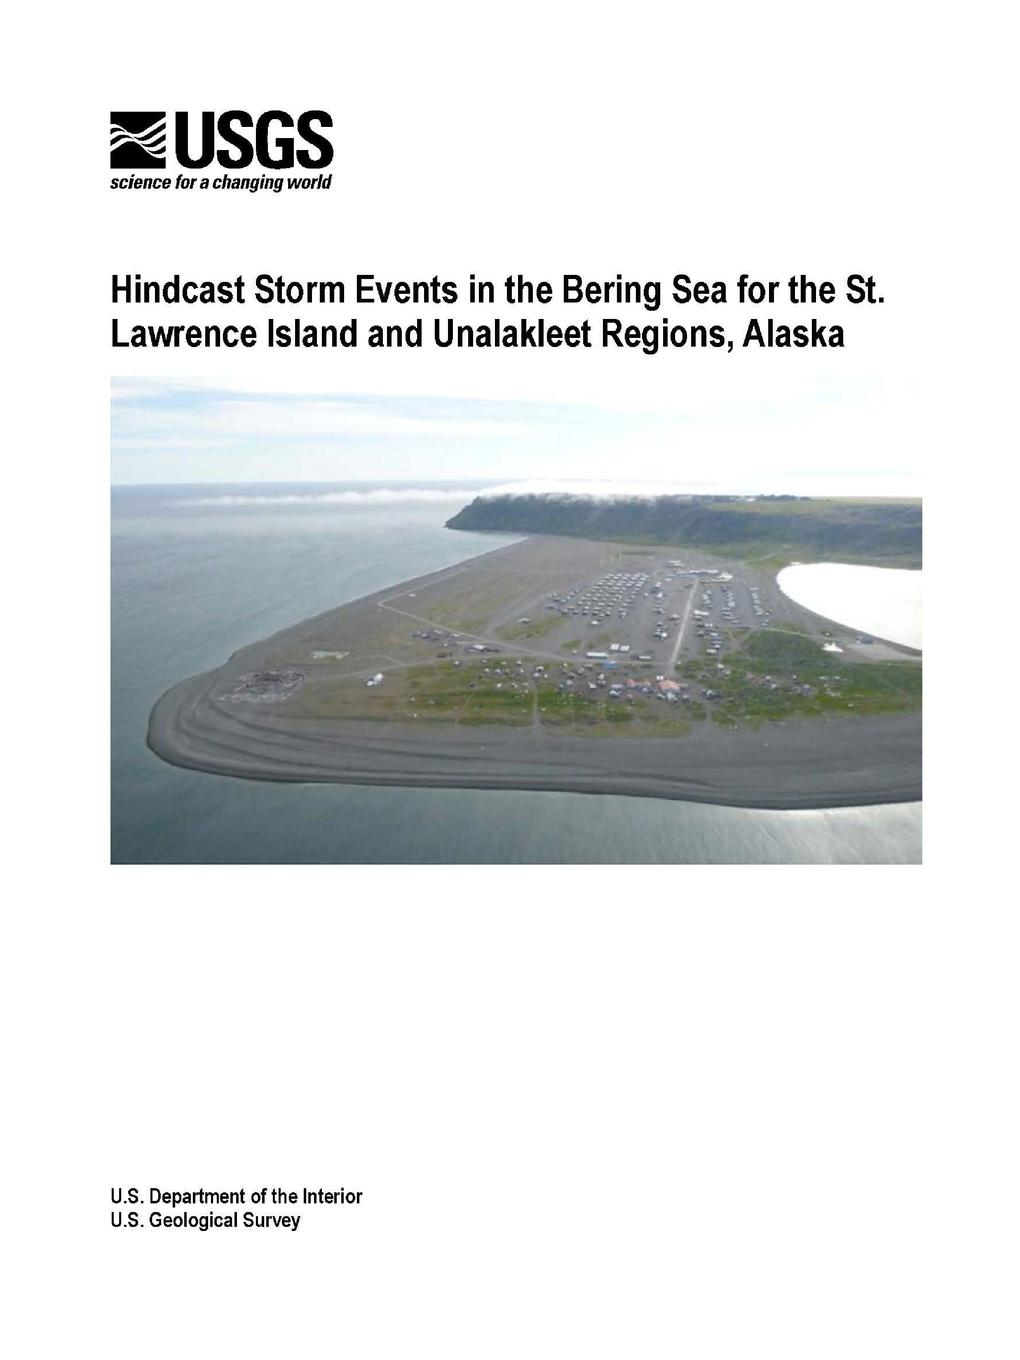 U.S. Department of the Interior, Li H. Erikson, Robert T. McCall Hindcast Storm Events in the Bering Sea for the St. Lawrence Island and Unalakleet Regions, Alaska aquaman volume 5 sea of storms